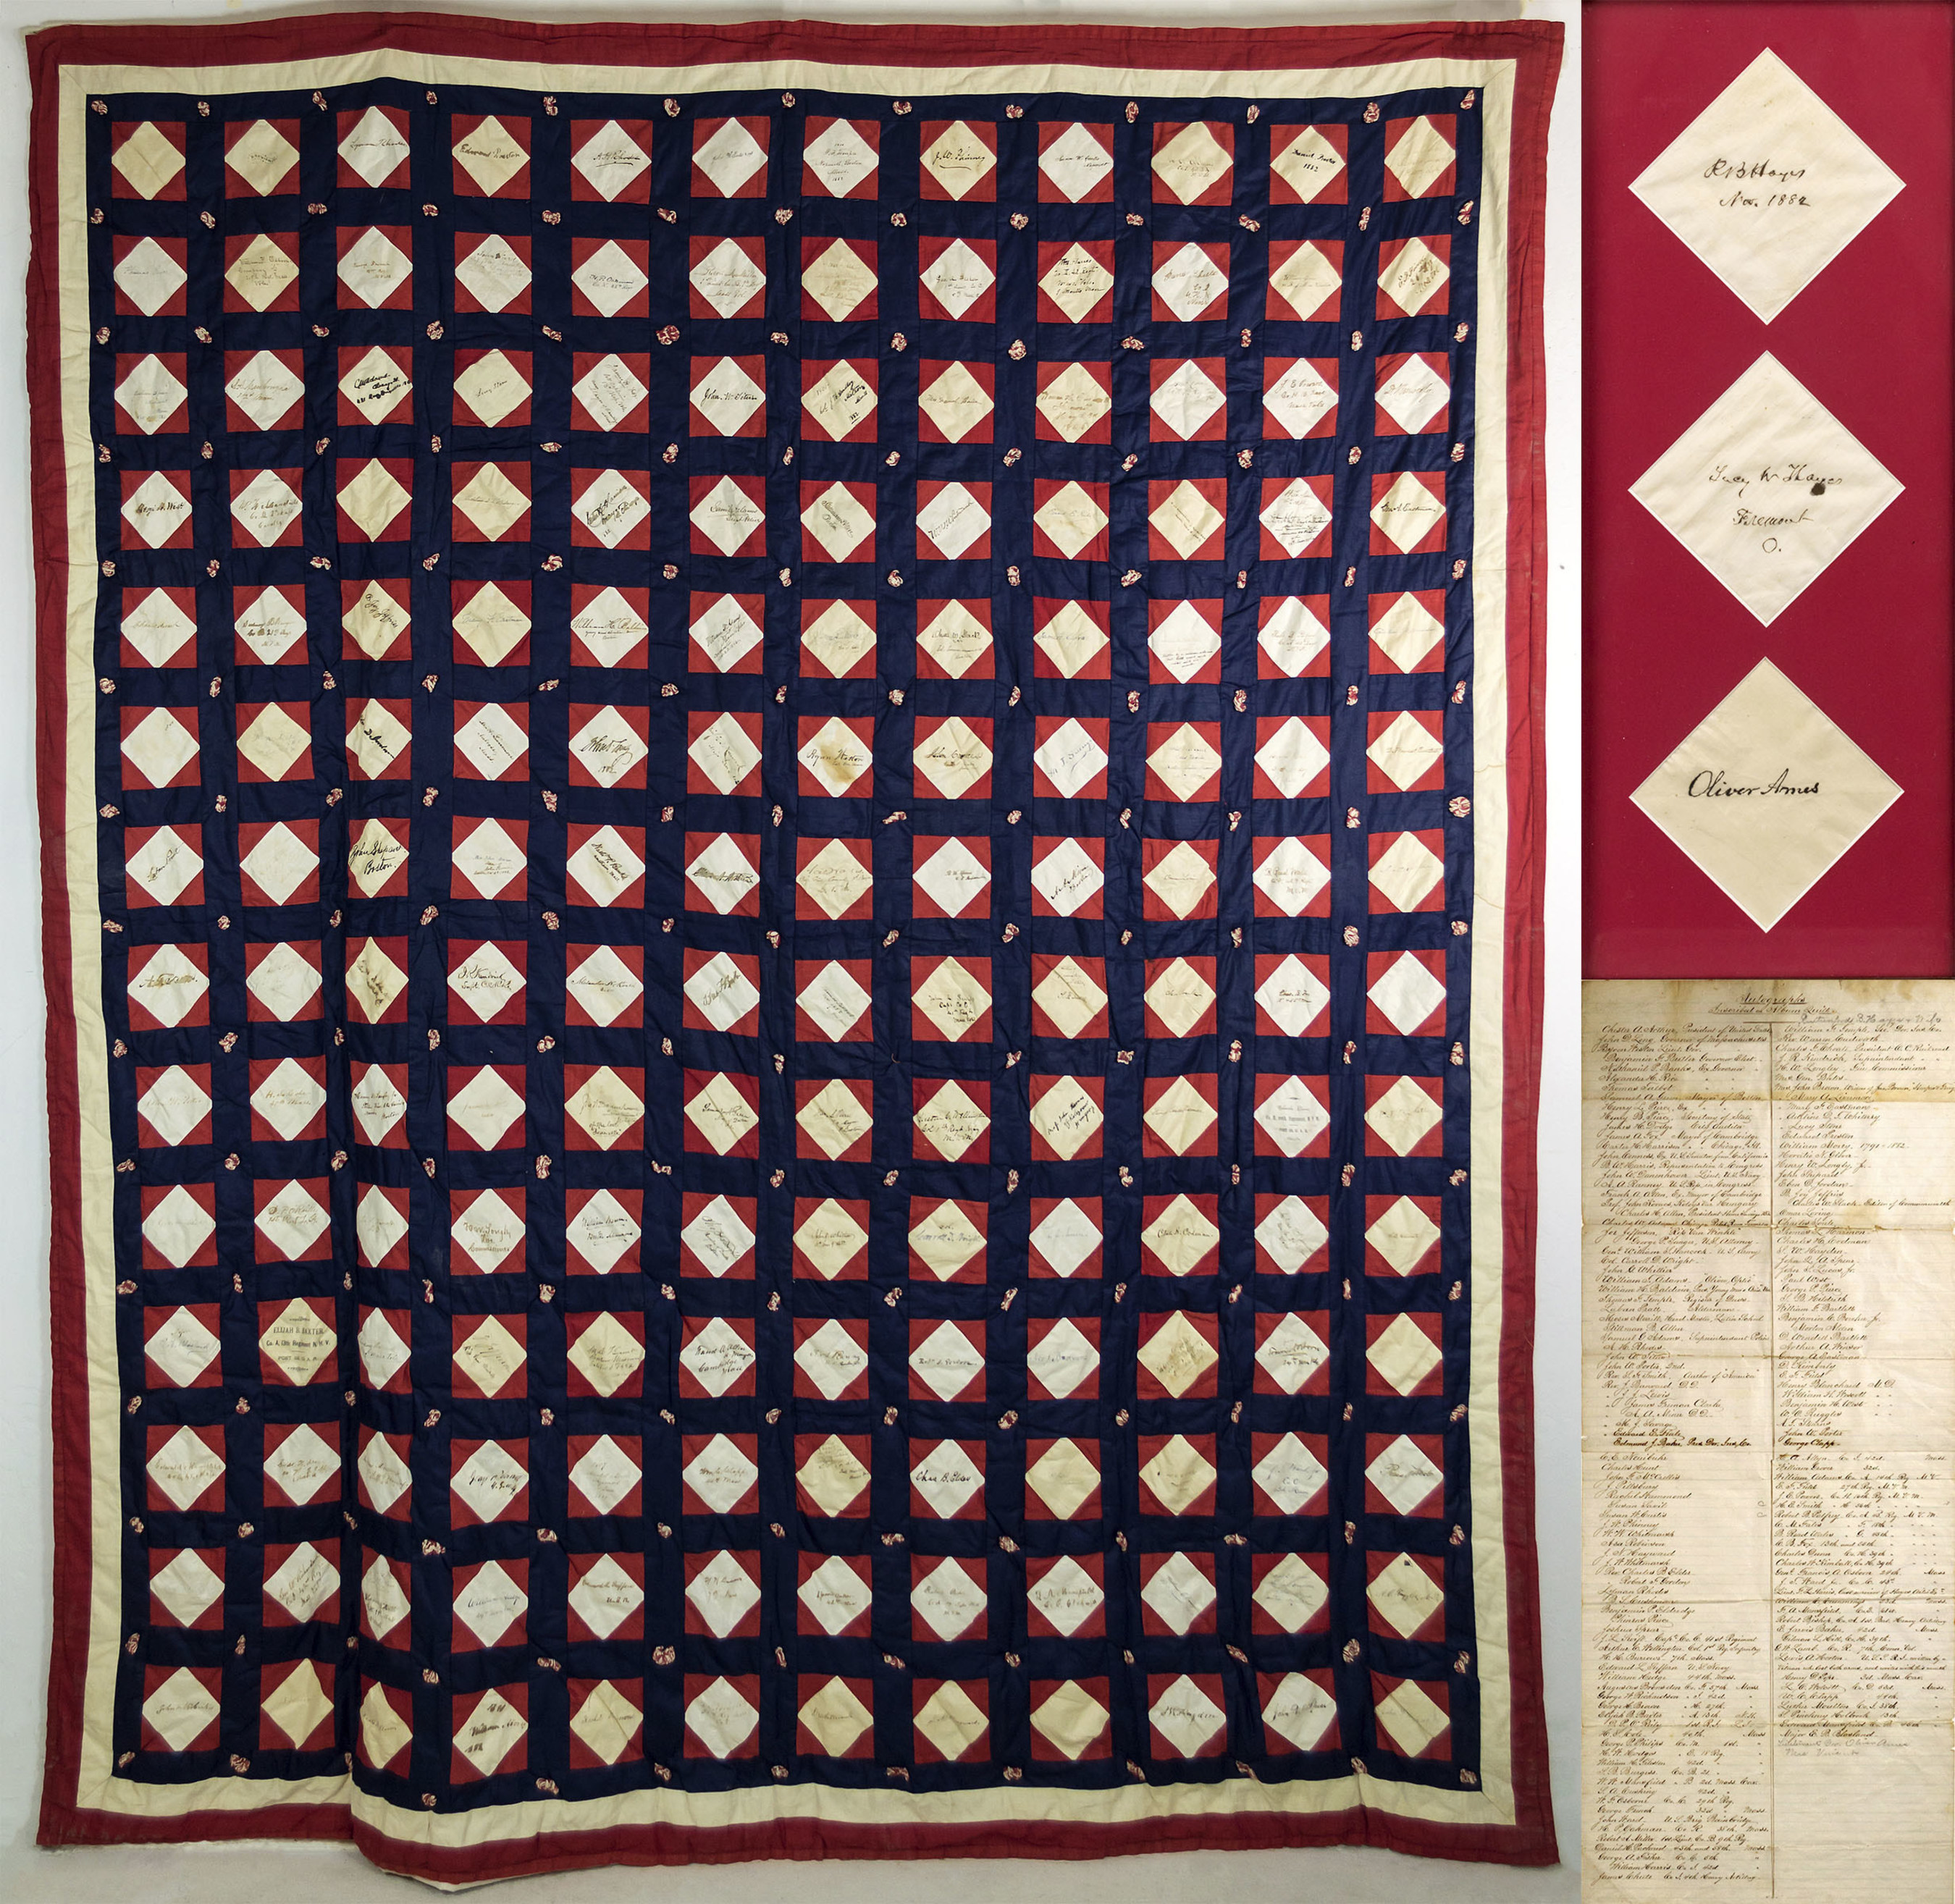 A quilt signed by 19th century presidents, Chester A. Arthur and Rutherford B. Hayes, is among the highlights of a three-day Americana auction at J. Levine Auction & Appraisal, set for Thursday, Friday and Saturday, July 28, 29 & 30 in Scottsdale, Arizona. www.jlevines.com